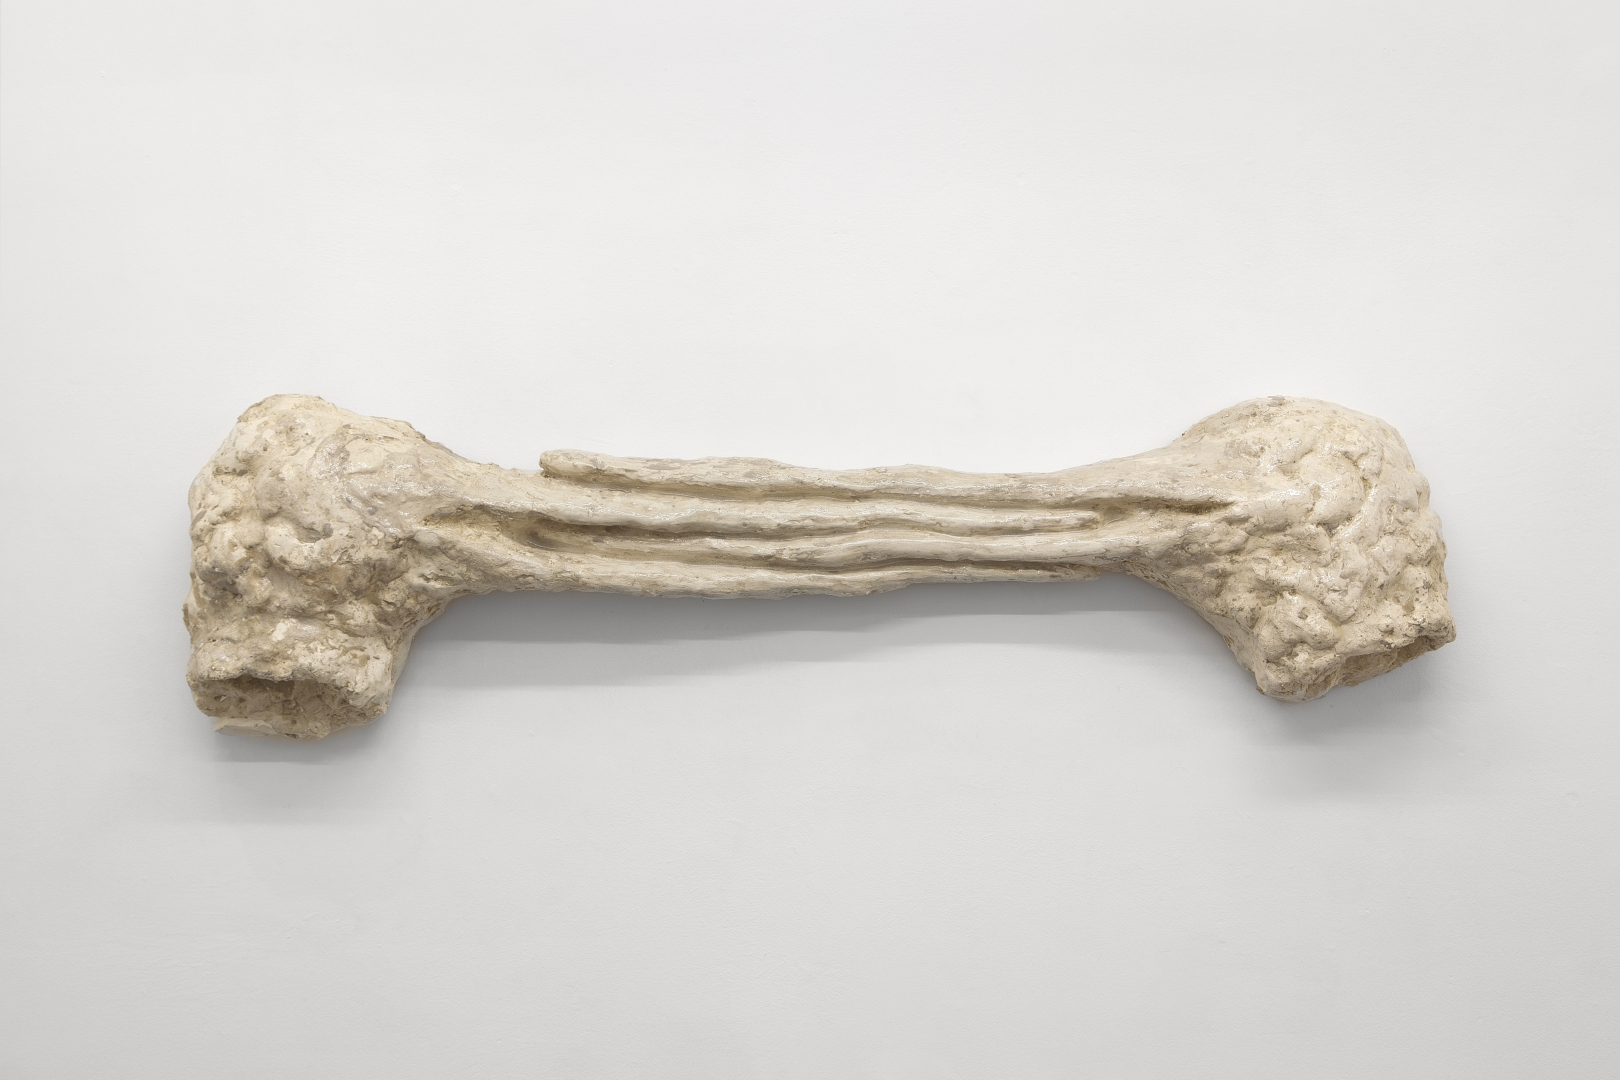 couple bécasses, plaster, resin, (140x 40 x 15cm) (2017)